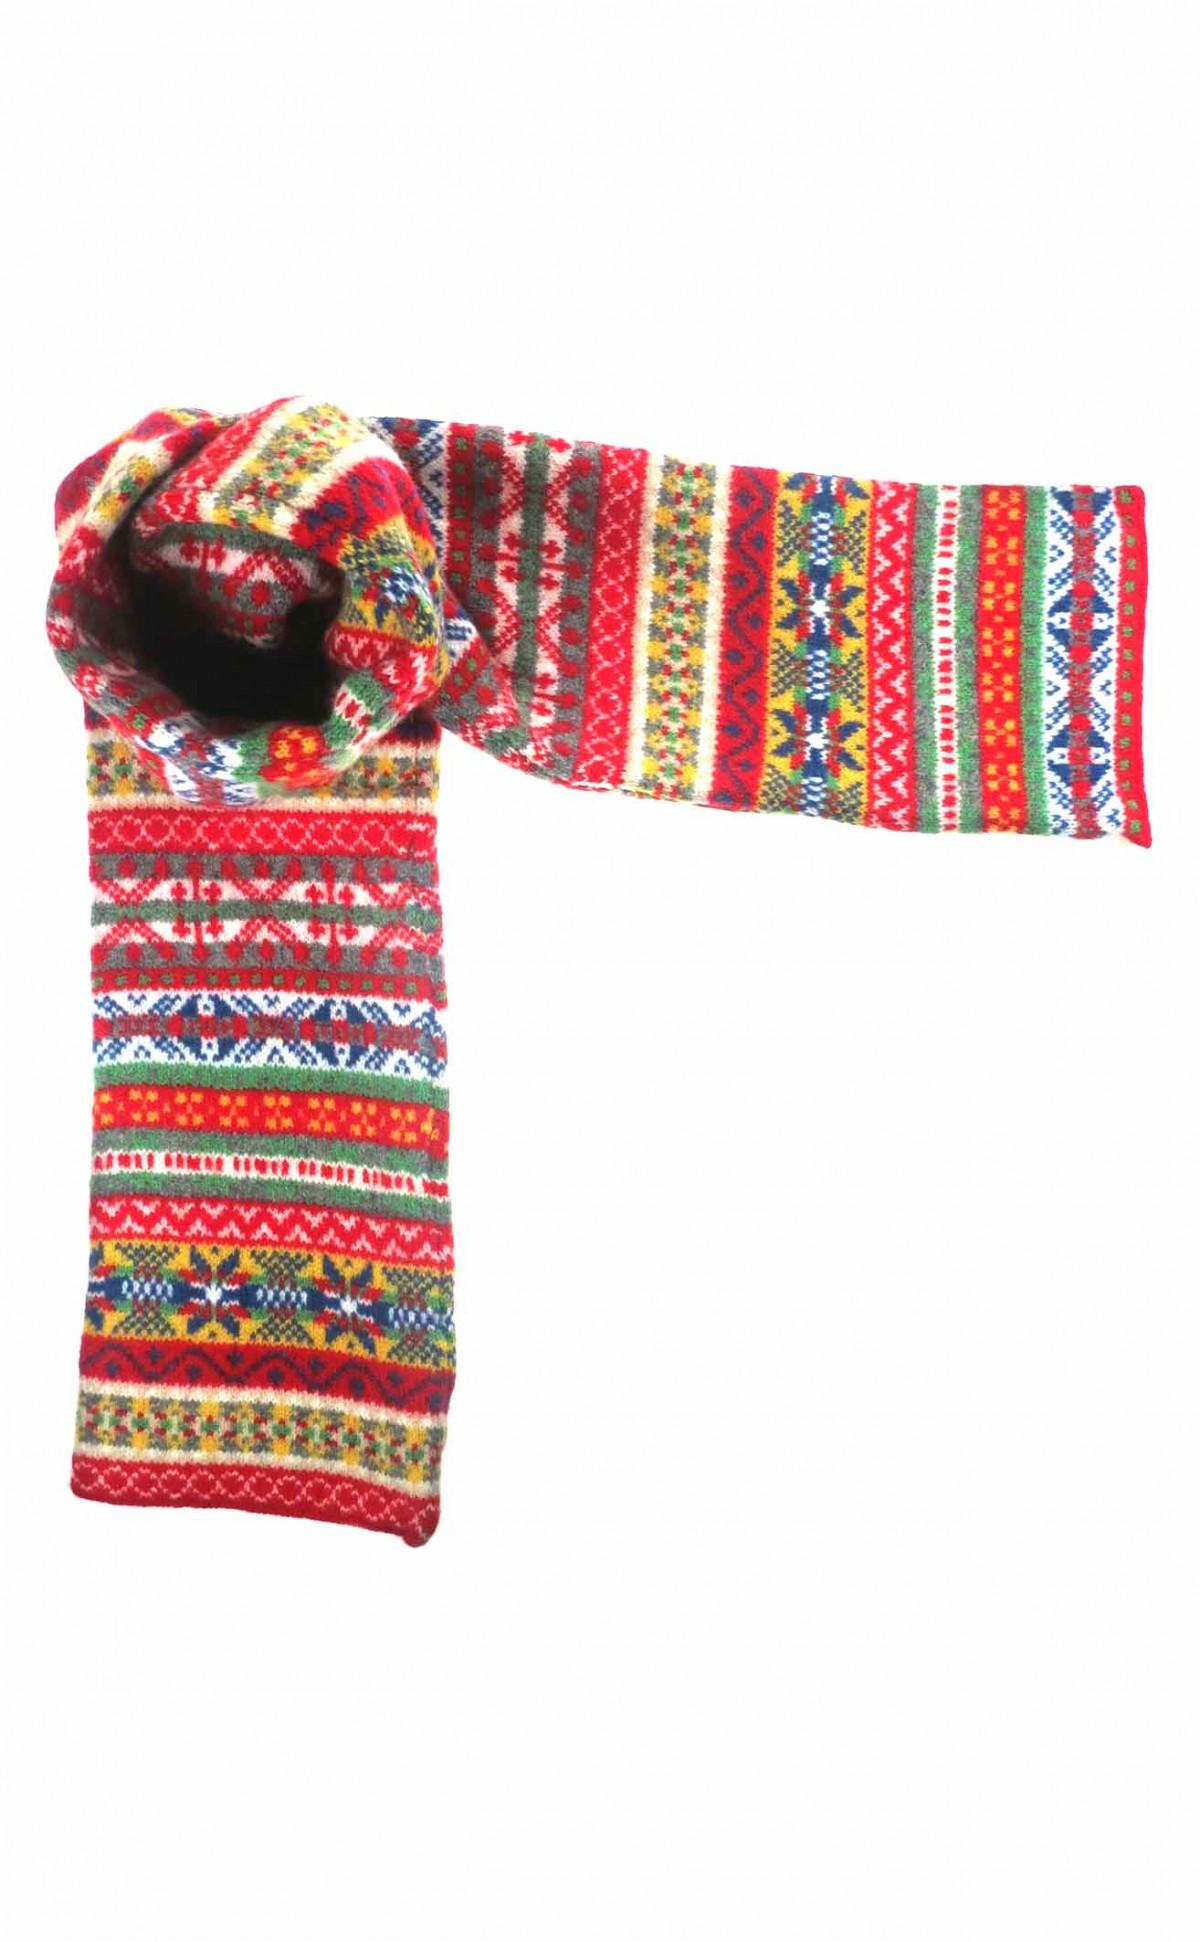 gilbw-sr_gilbw_childs_fairisle_scarf_1